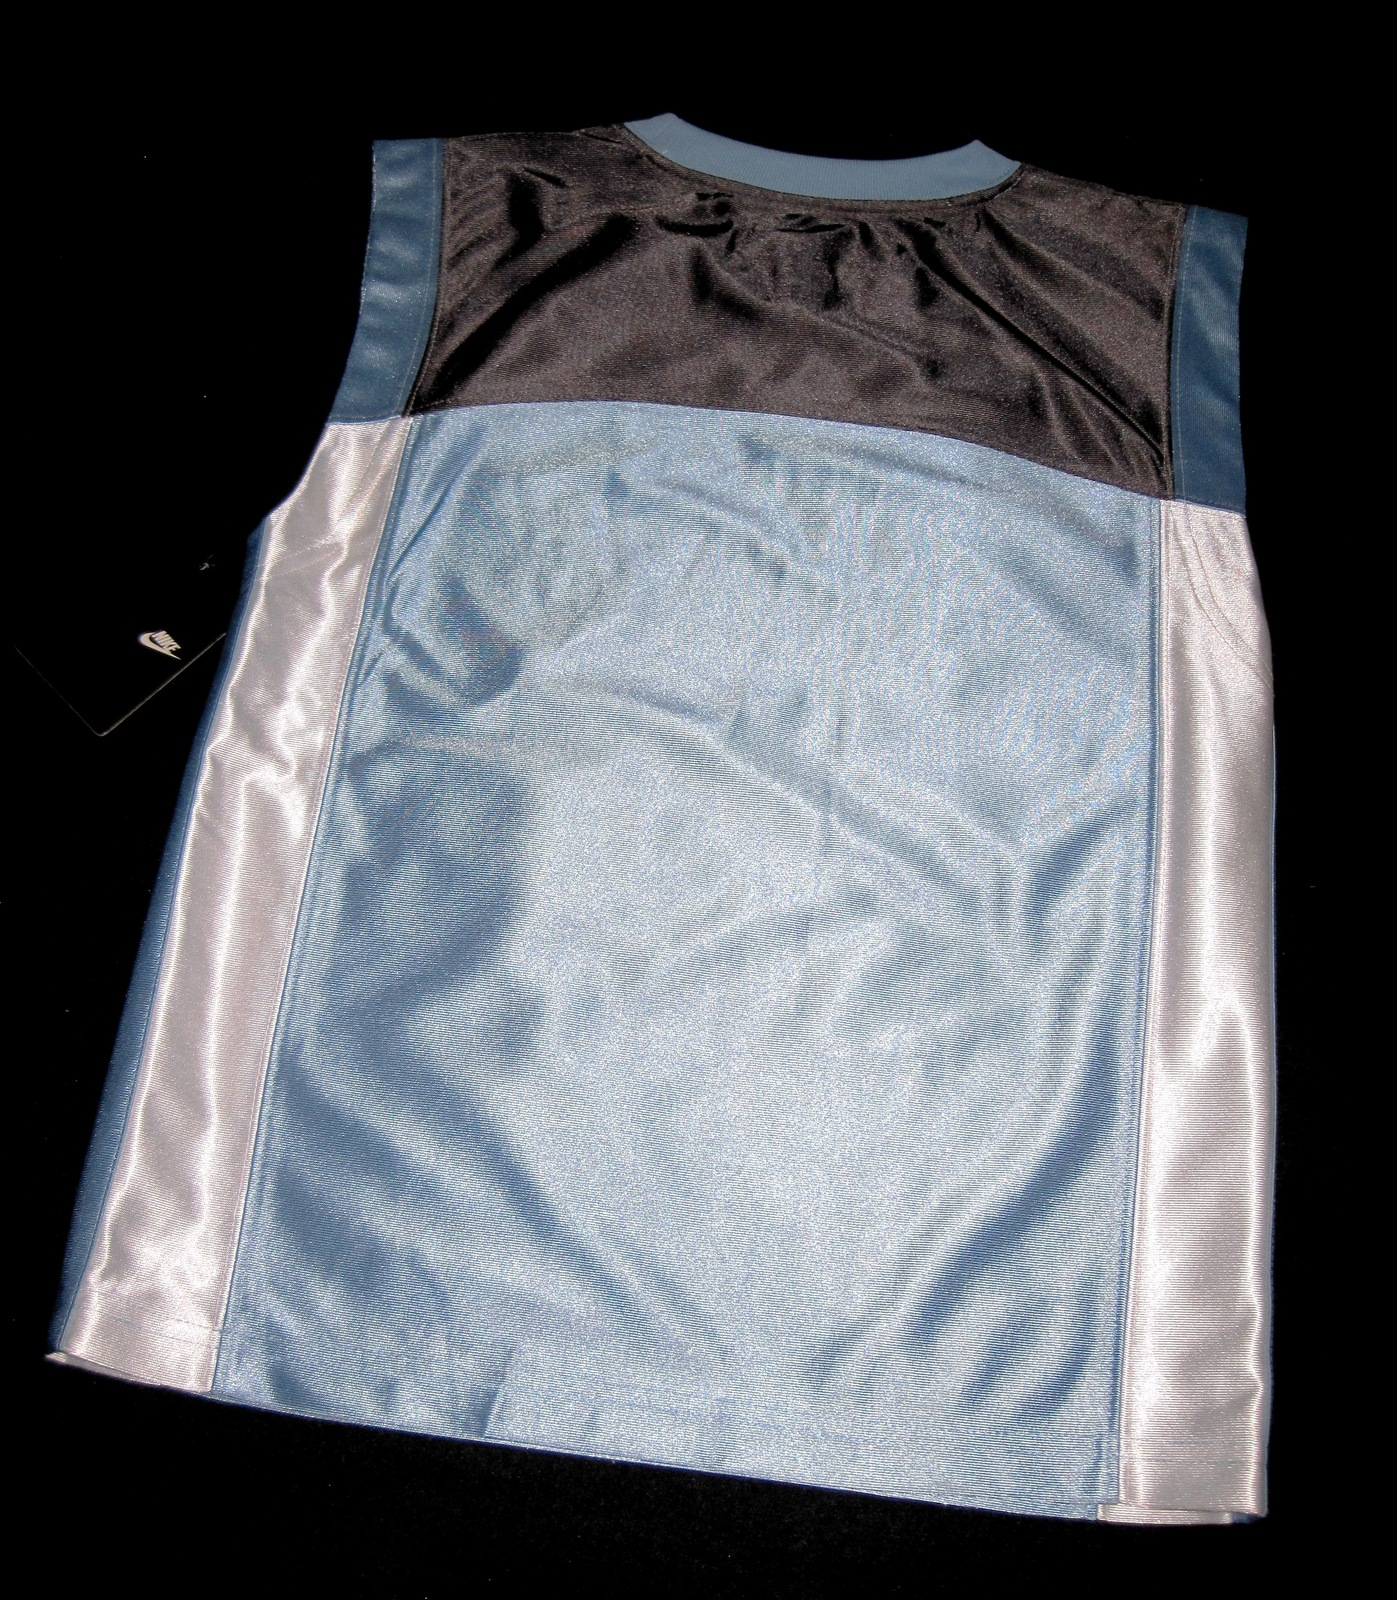 BOYS 7 - Nike - Light Blue-Gray-White BASKETBALL SPORTS JERSEY image 11